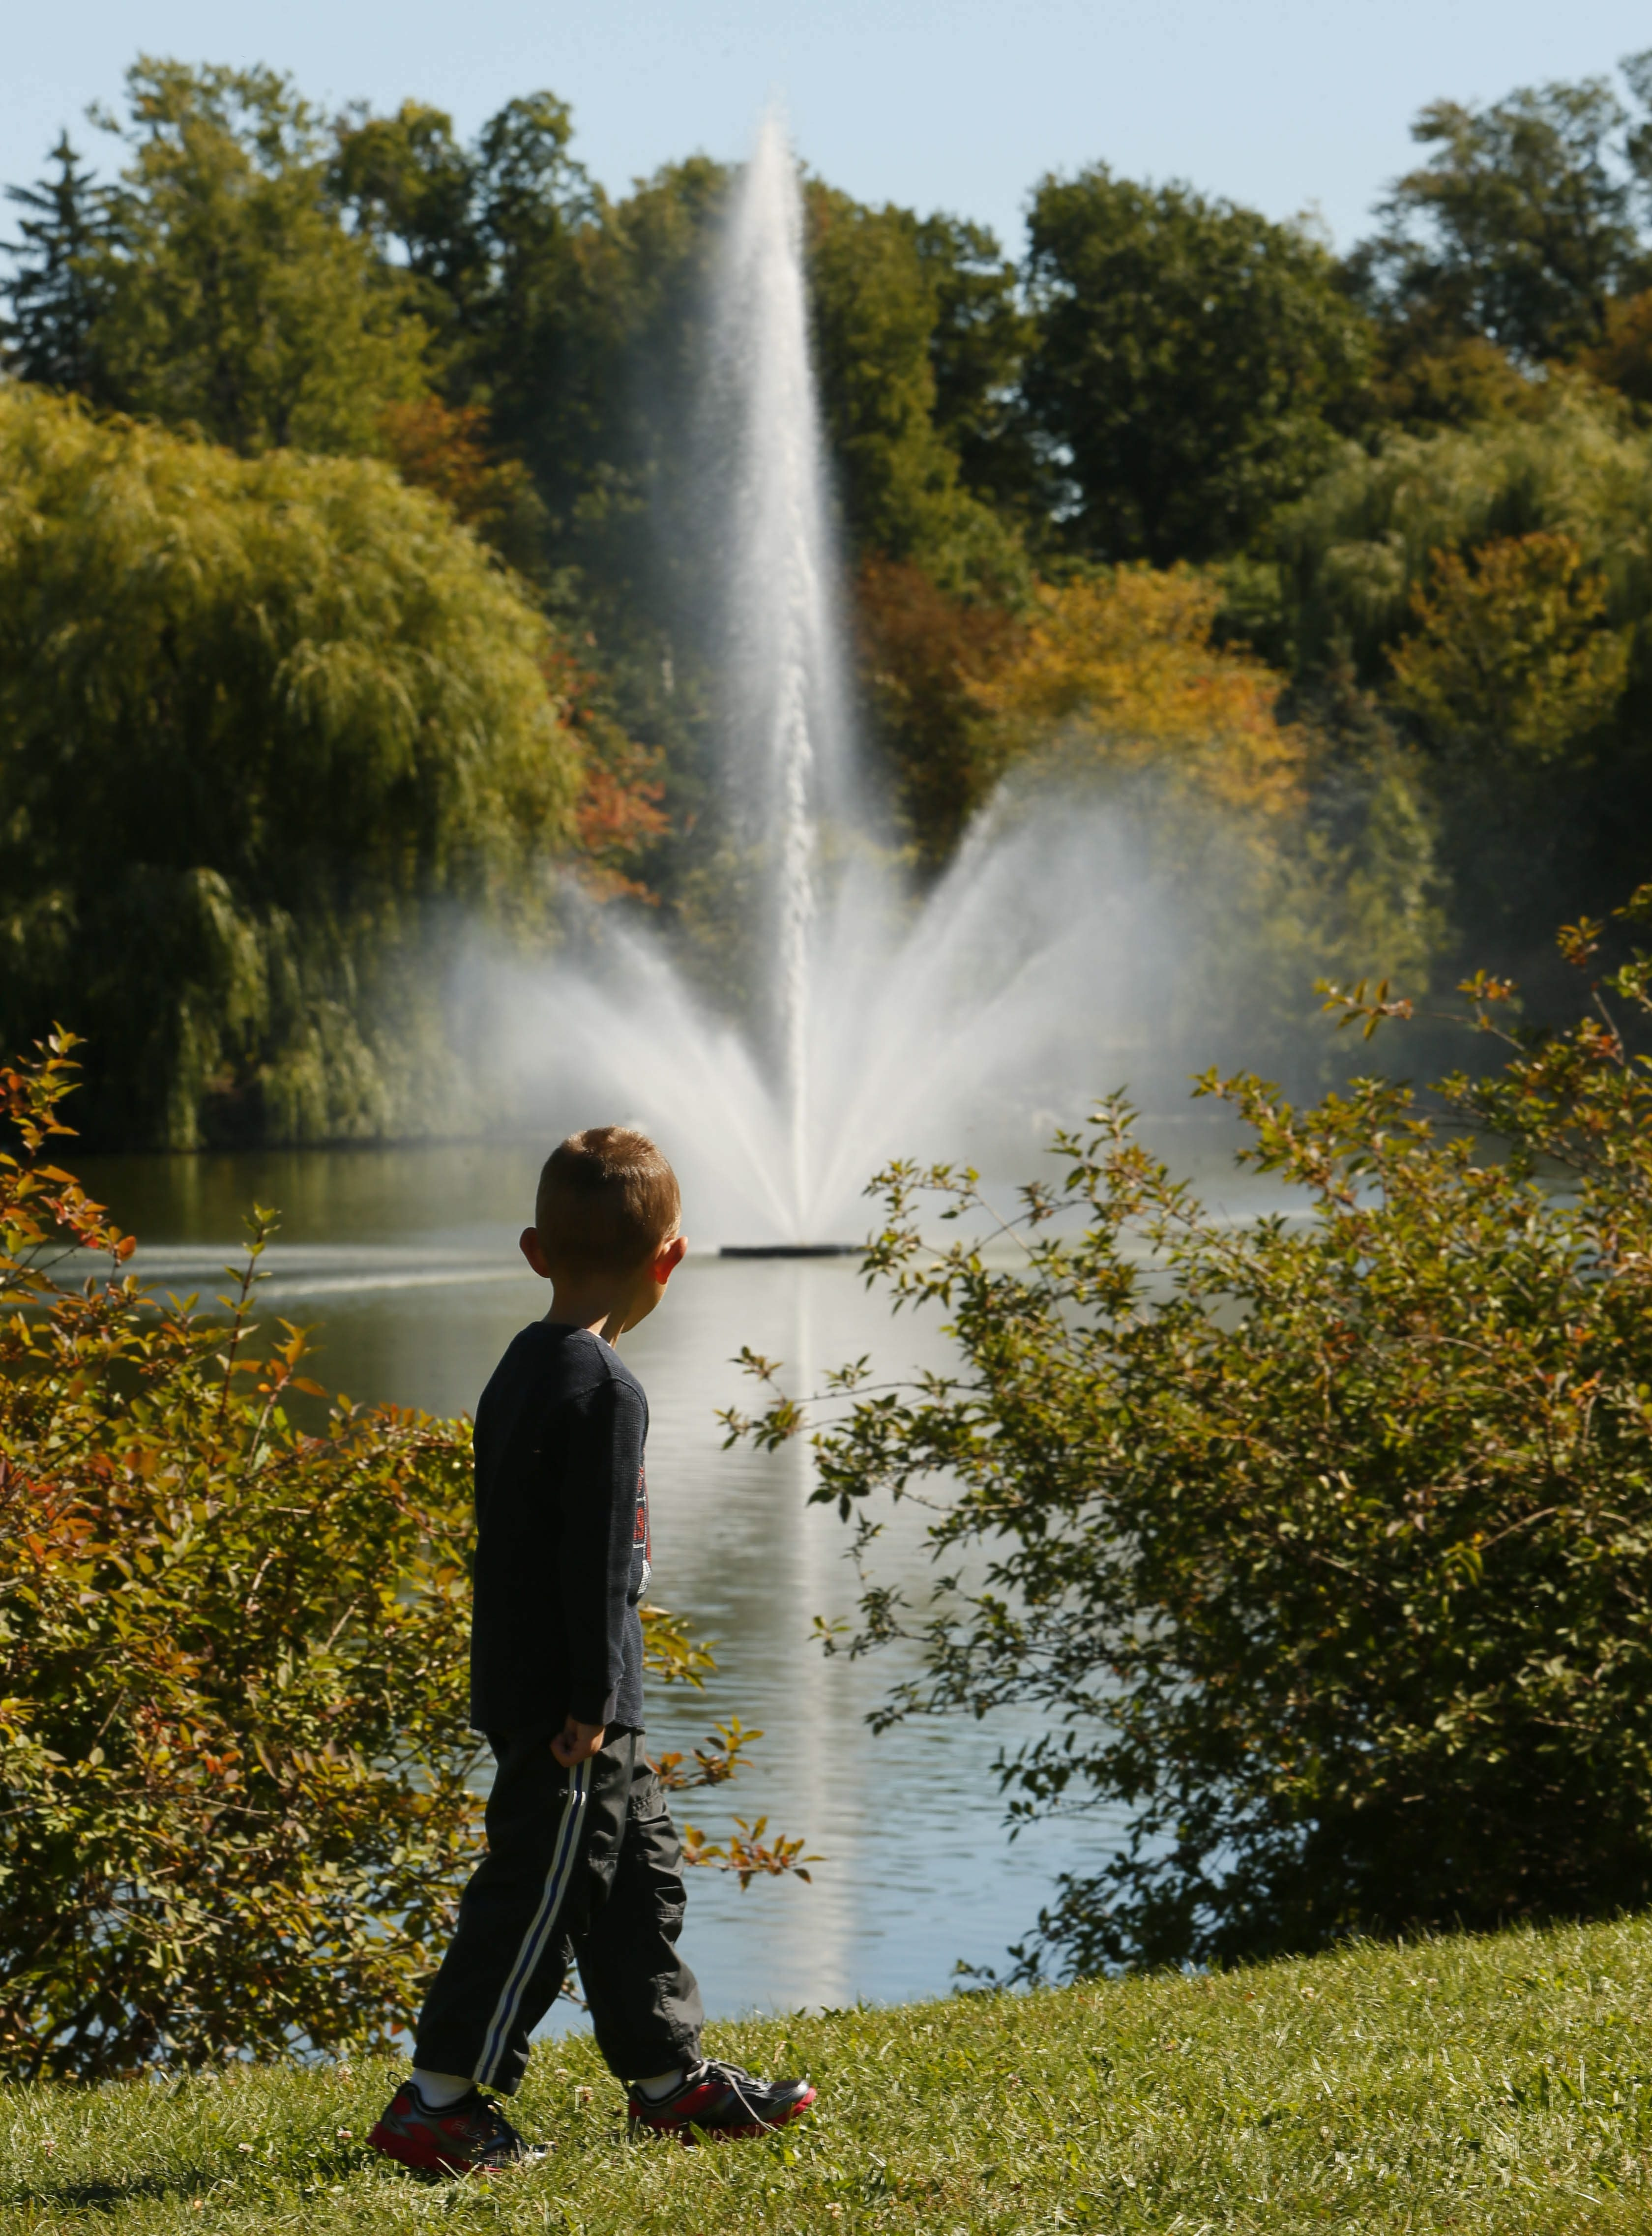 A youngster stops to look  as the new fountain in Hoyt Lake spews water into the air. It was built to emulate the original one that was built in 1897 and is shown at left in an old postcard.